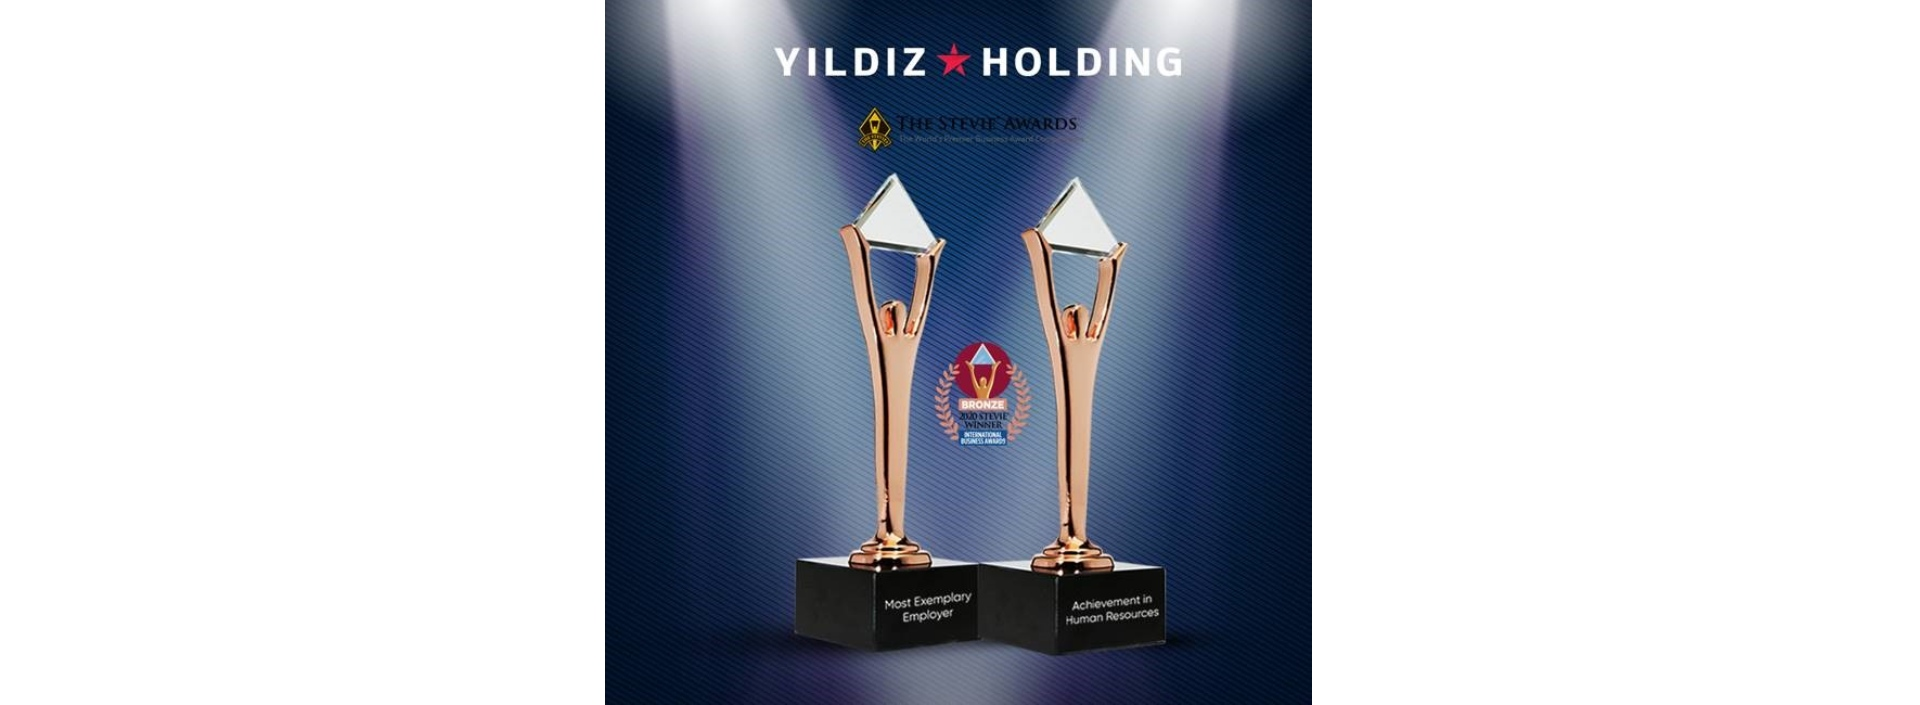 Yıldız Holding wins two Stevie Awards with its innovative practices